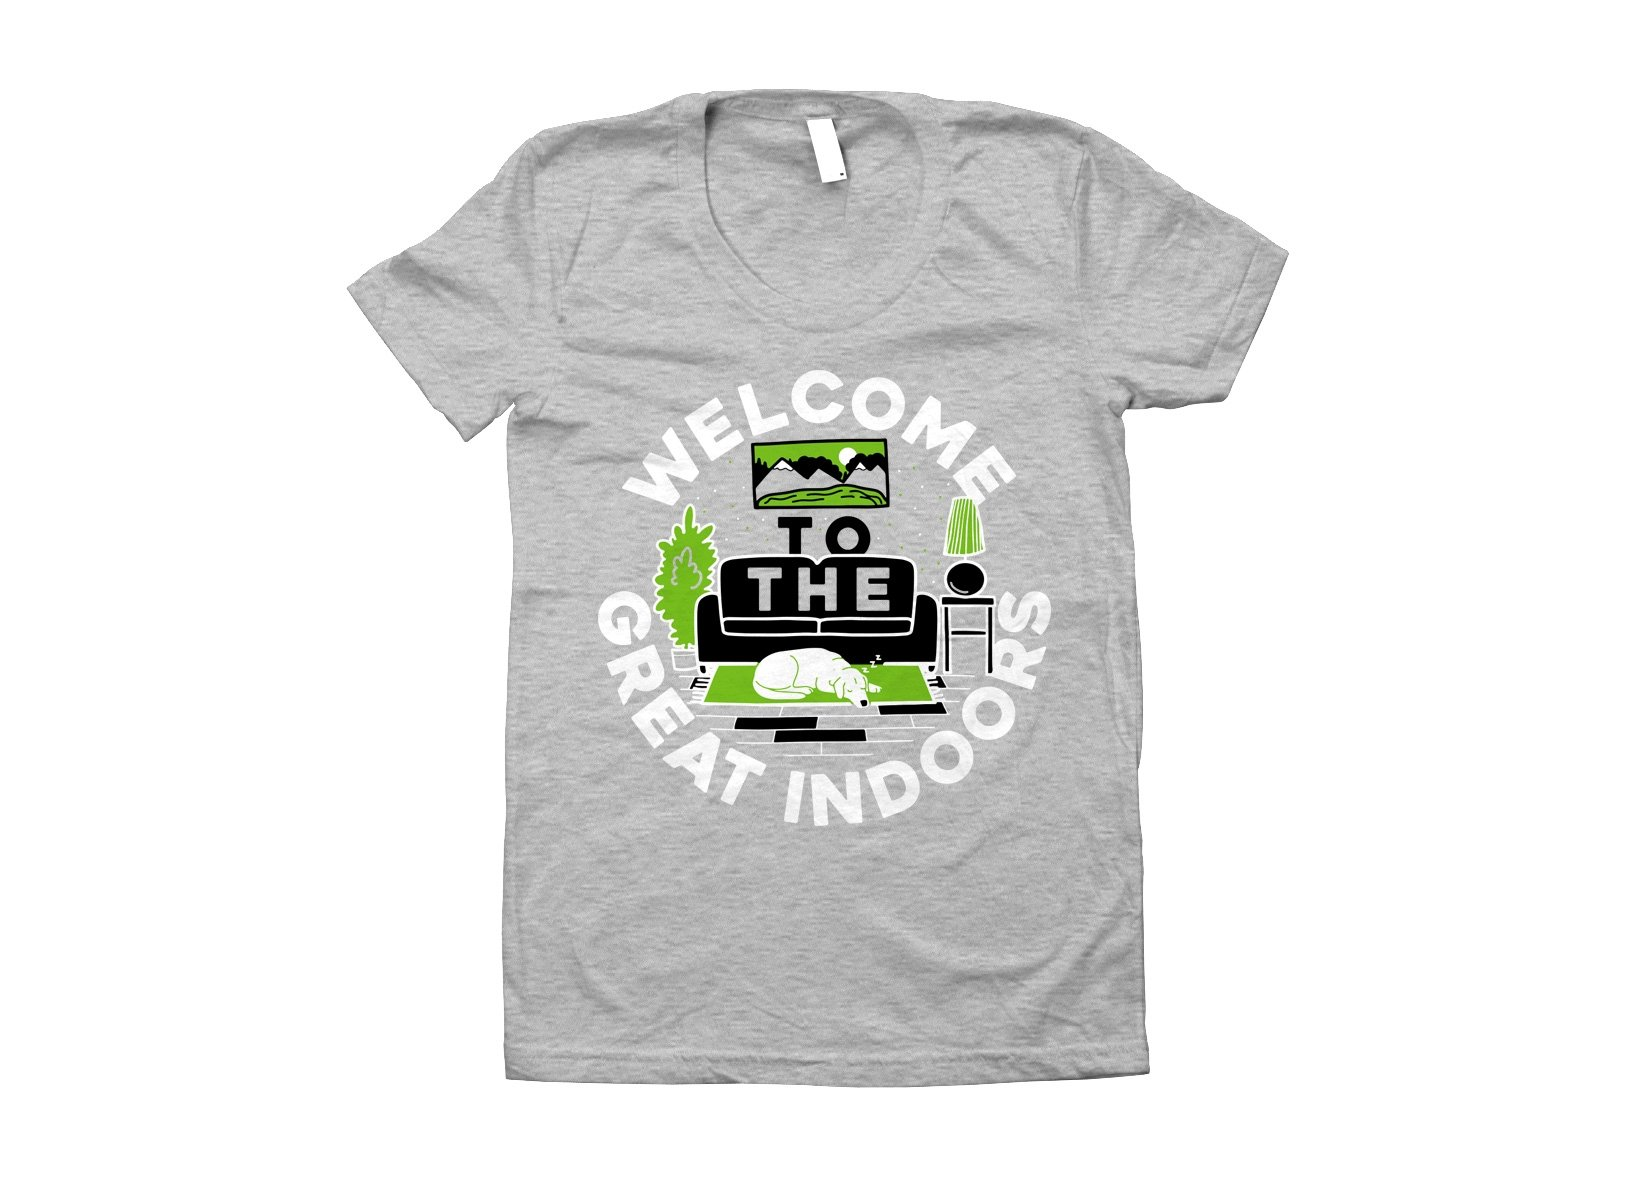 Welcome To The Great Indoors on Juniors T-Shirt